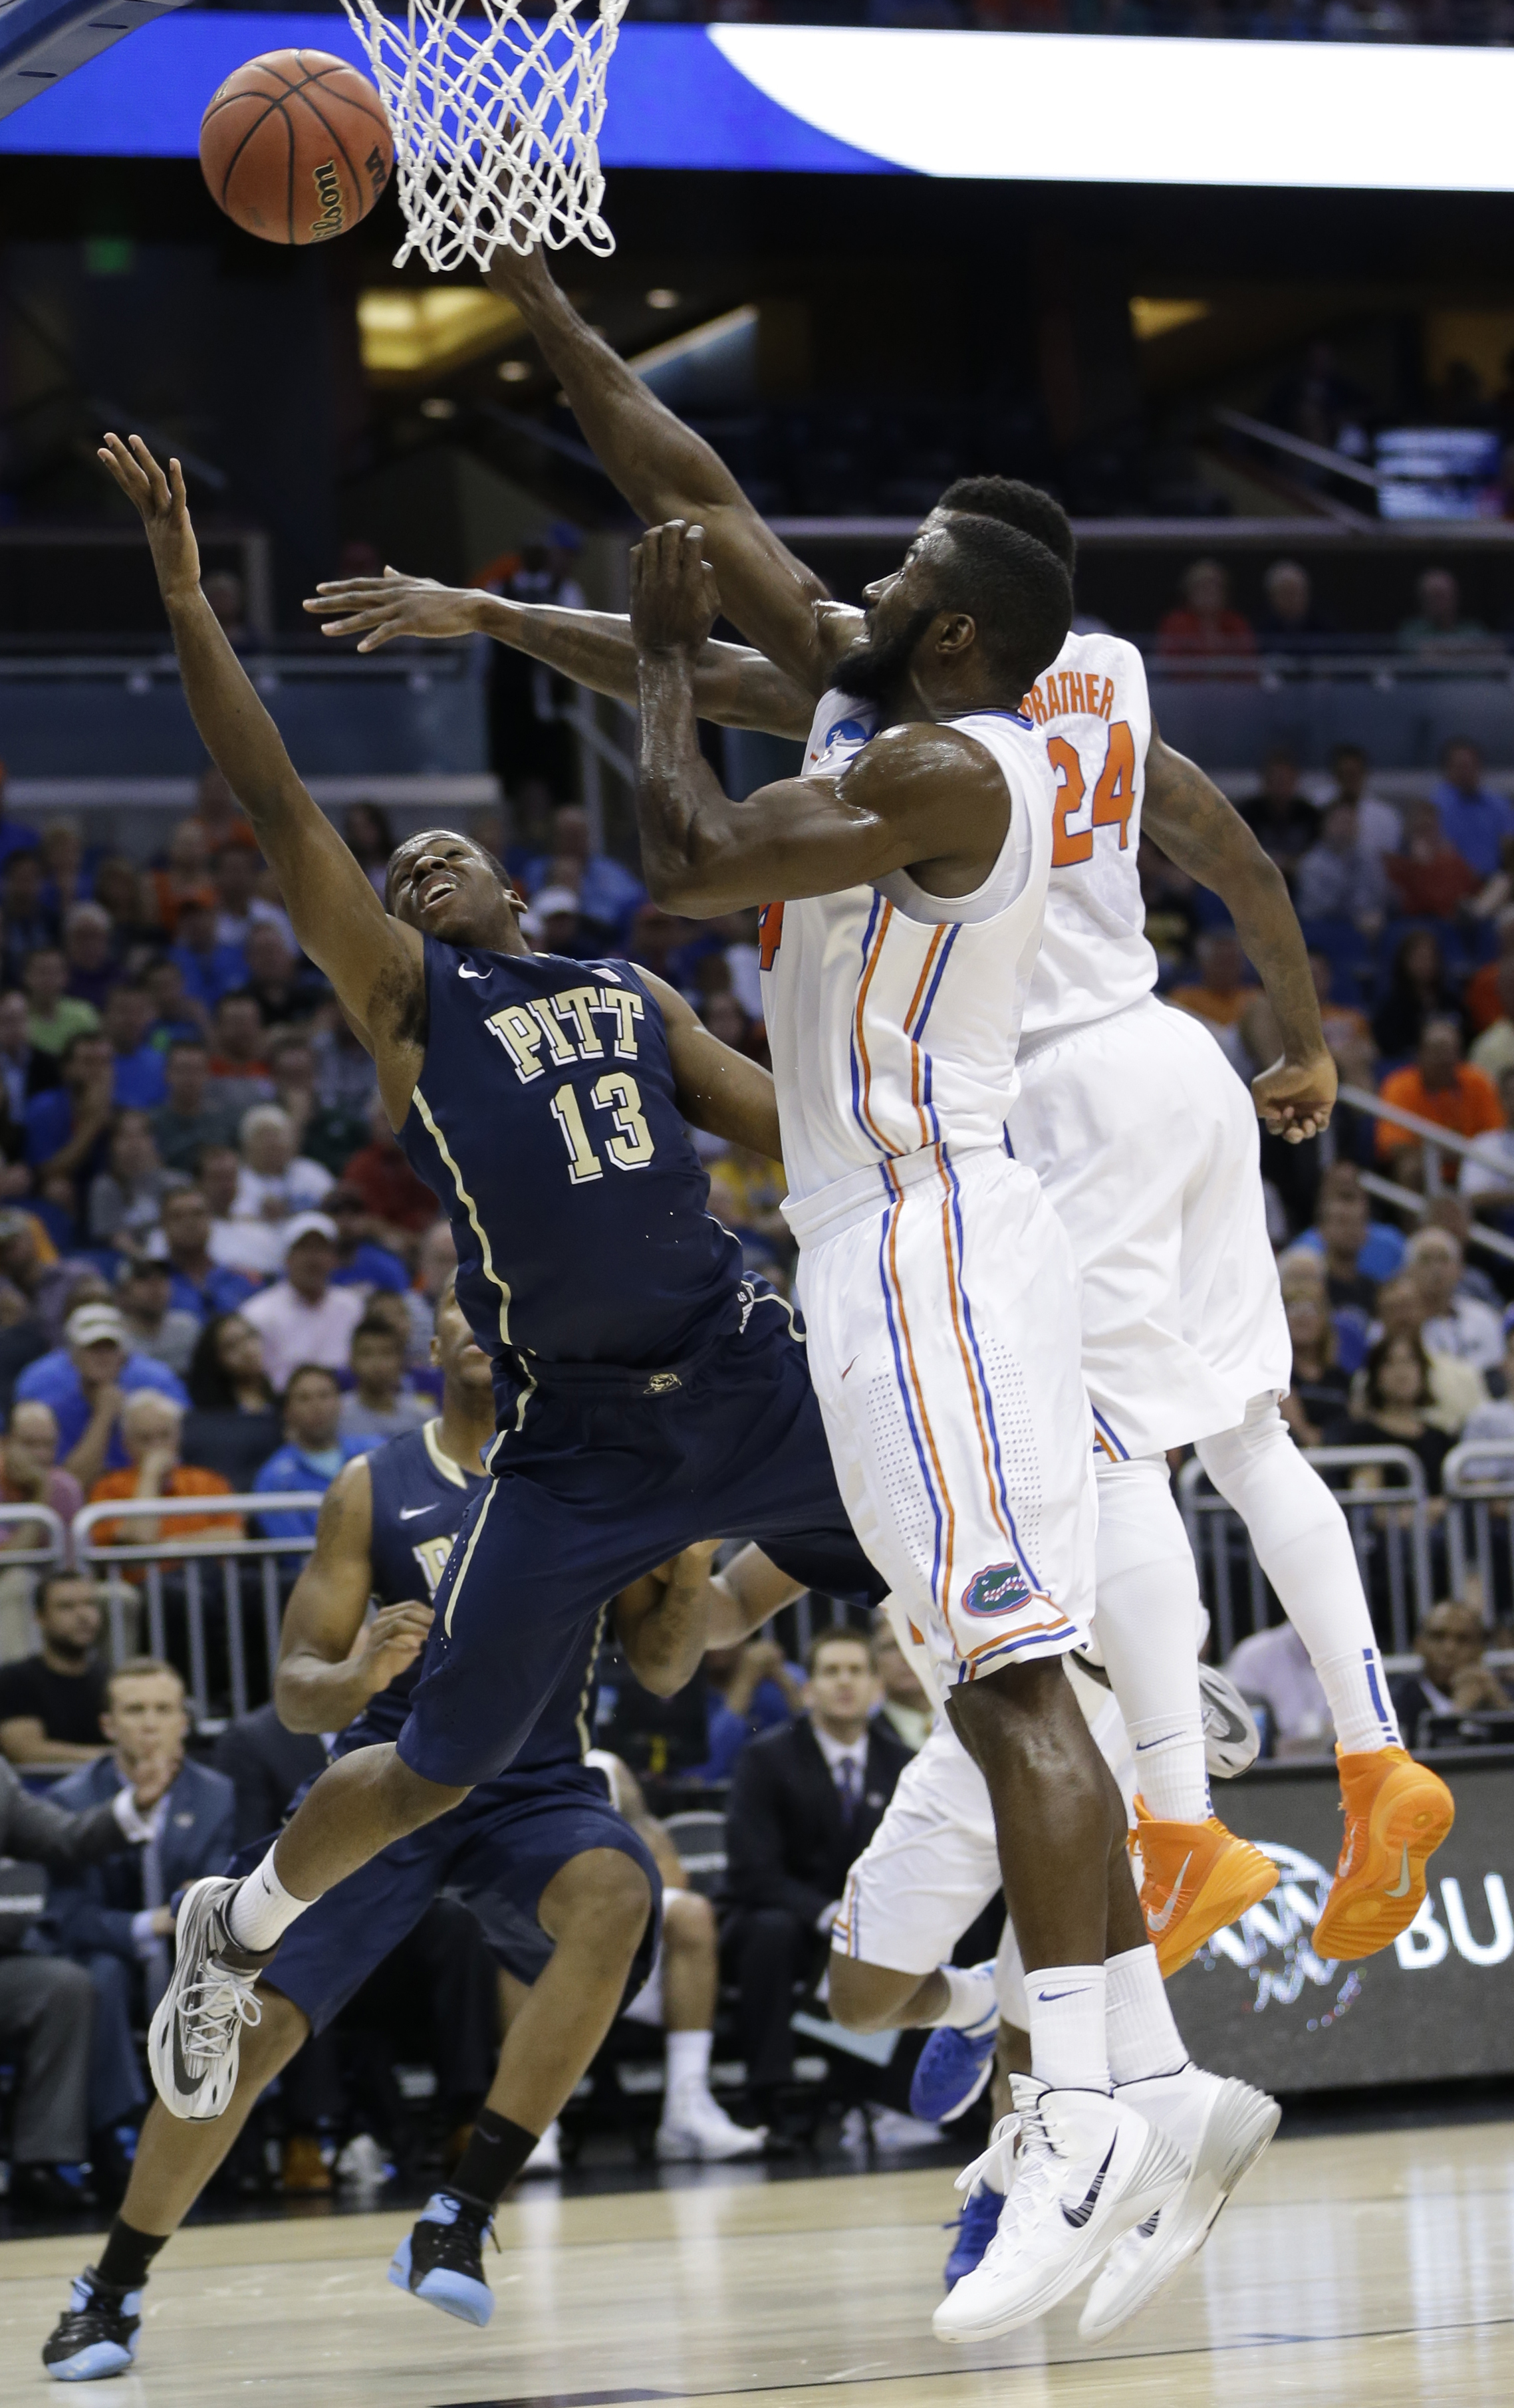 Florida center Patric Young (4) and forward Casey Prather (24) block a shot by Pittsburgh guard Josh Newkirk (13) during the first half in a third-round game in the NCAA college basketball tournament  Saturday, March 22, 2014, in Orlando, Fla